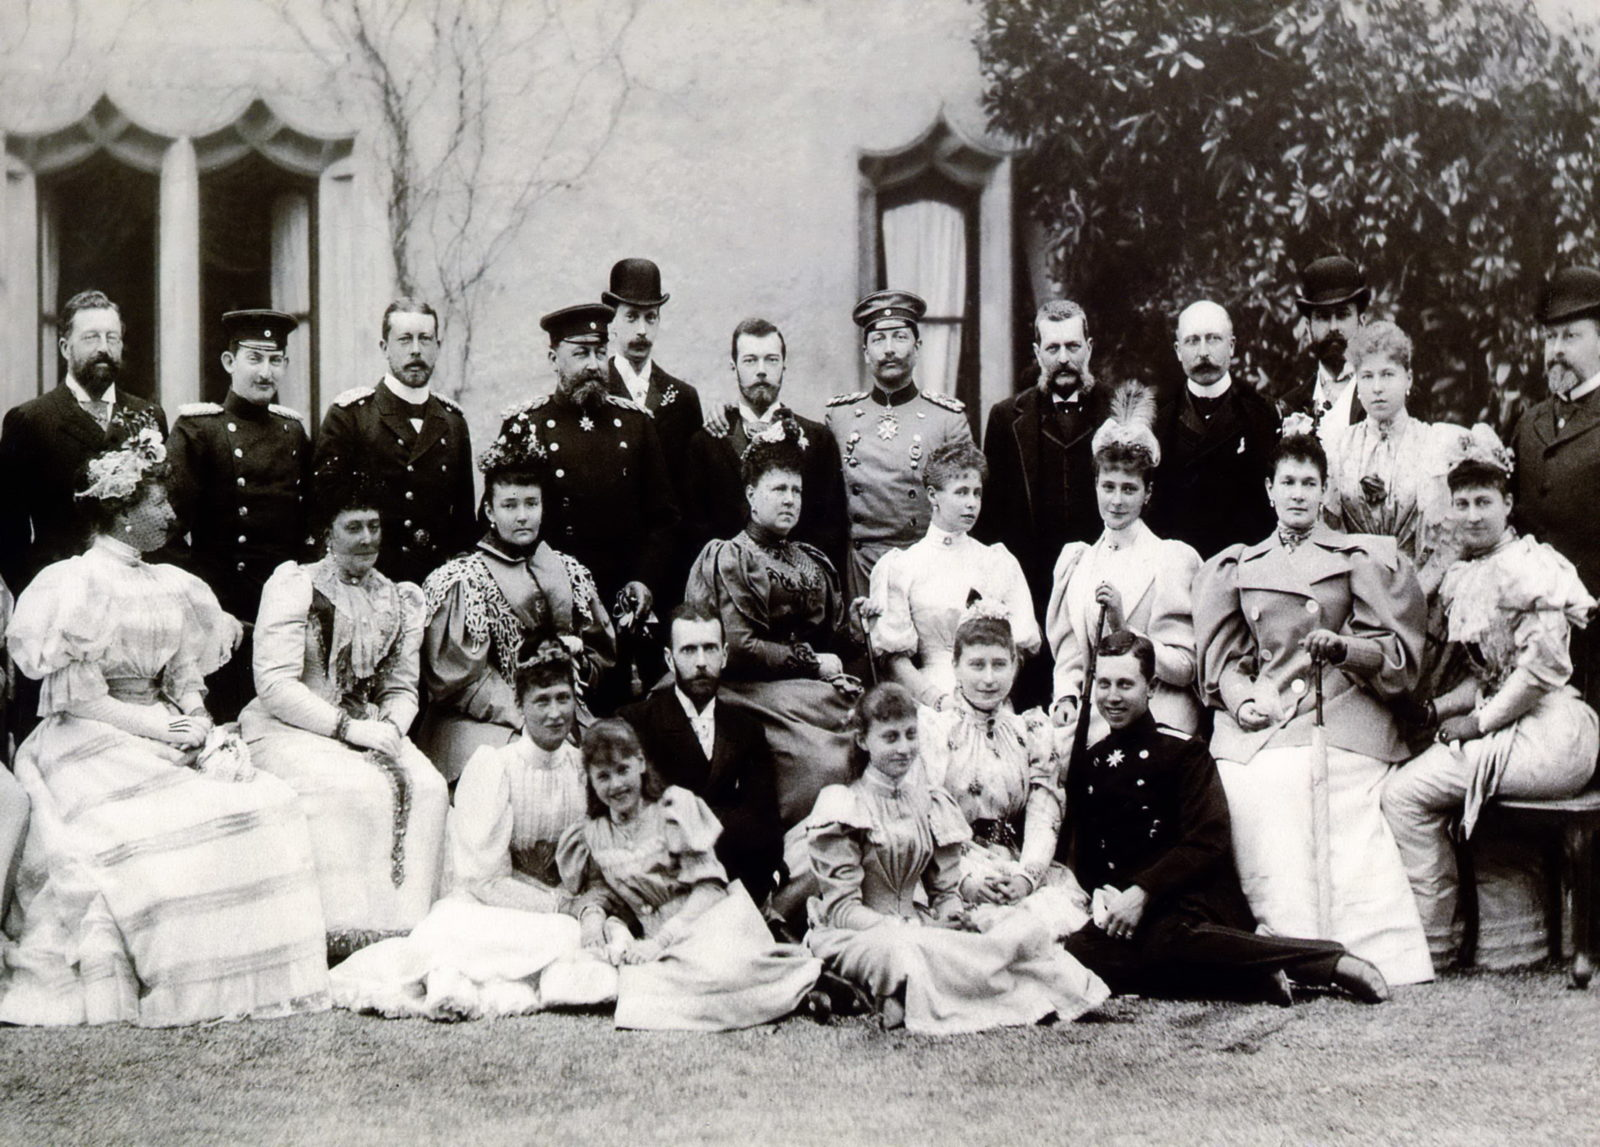 Heir Tsesarevich Nikolai Alexandrovich and Hessian Princess Alice after the betrothal, surrounded by relatives.